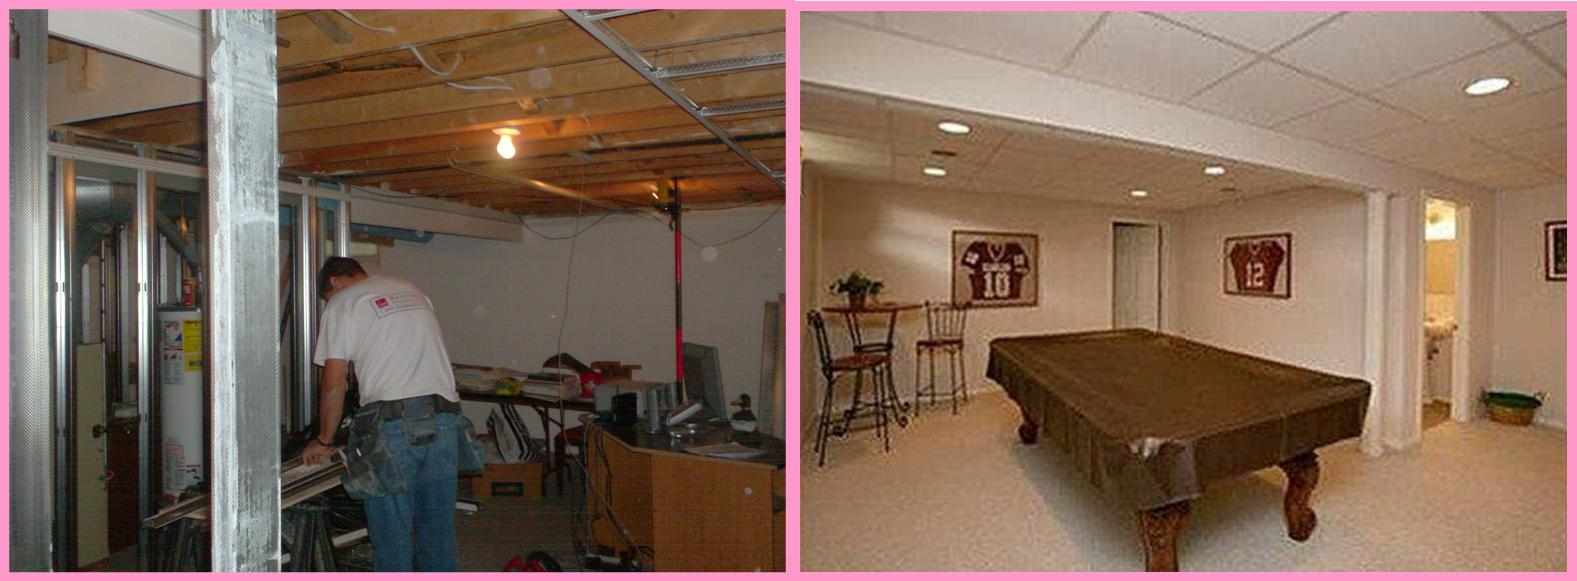 Before And After Photos Of Finished Basements